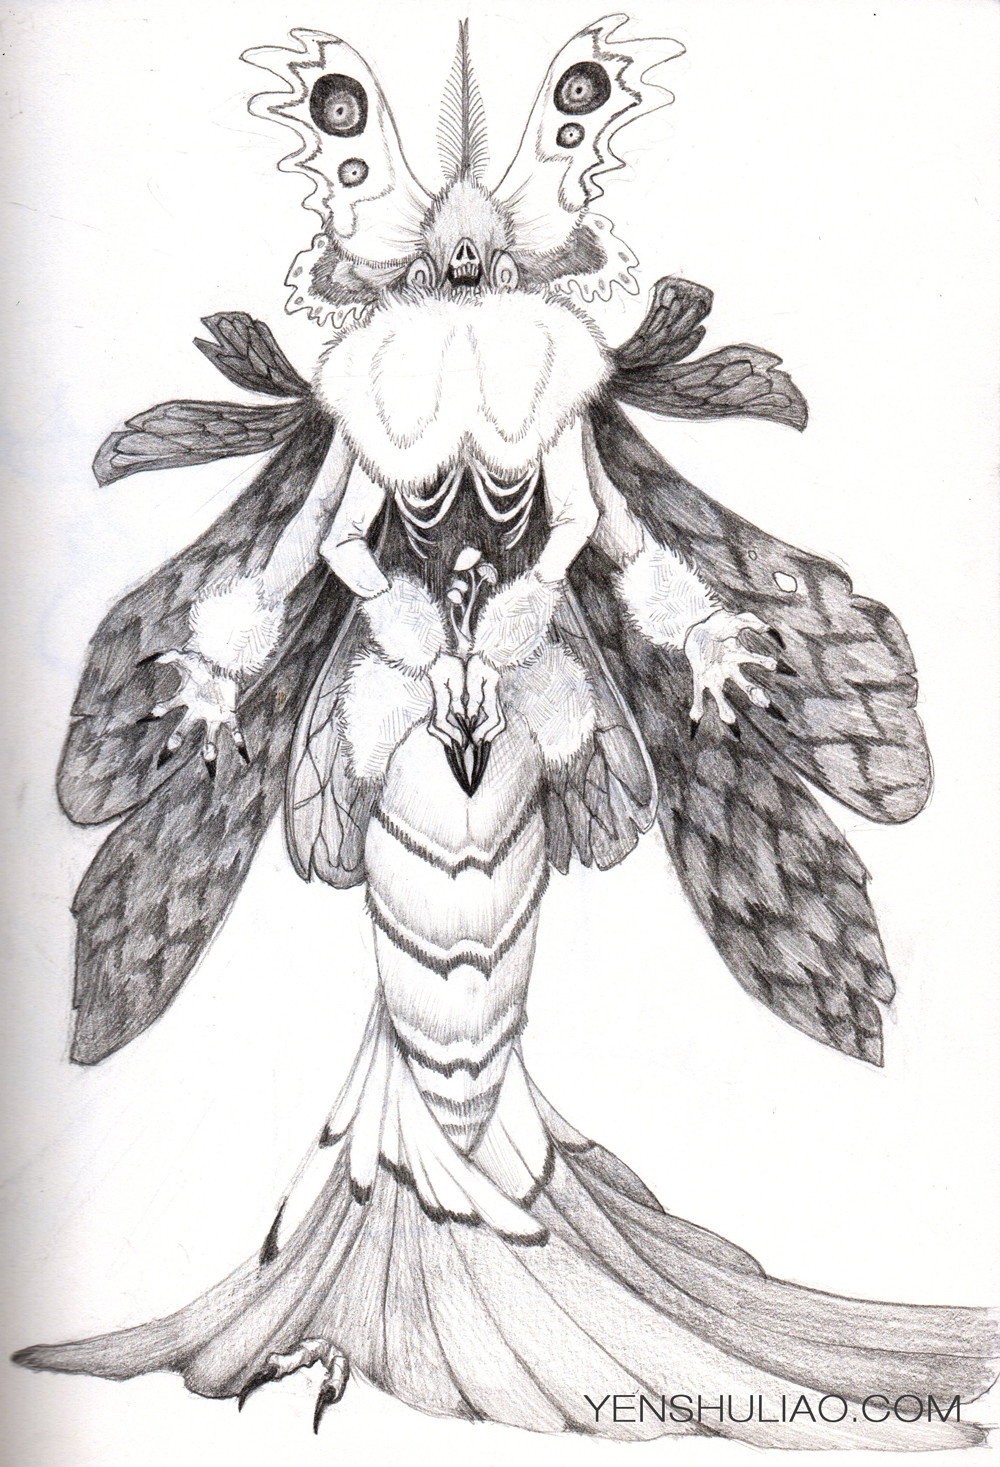 At the end of a late night, finished!